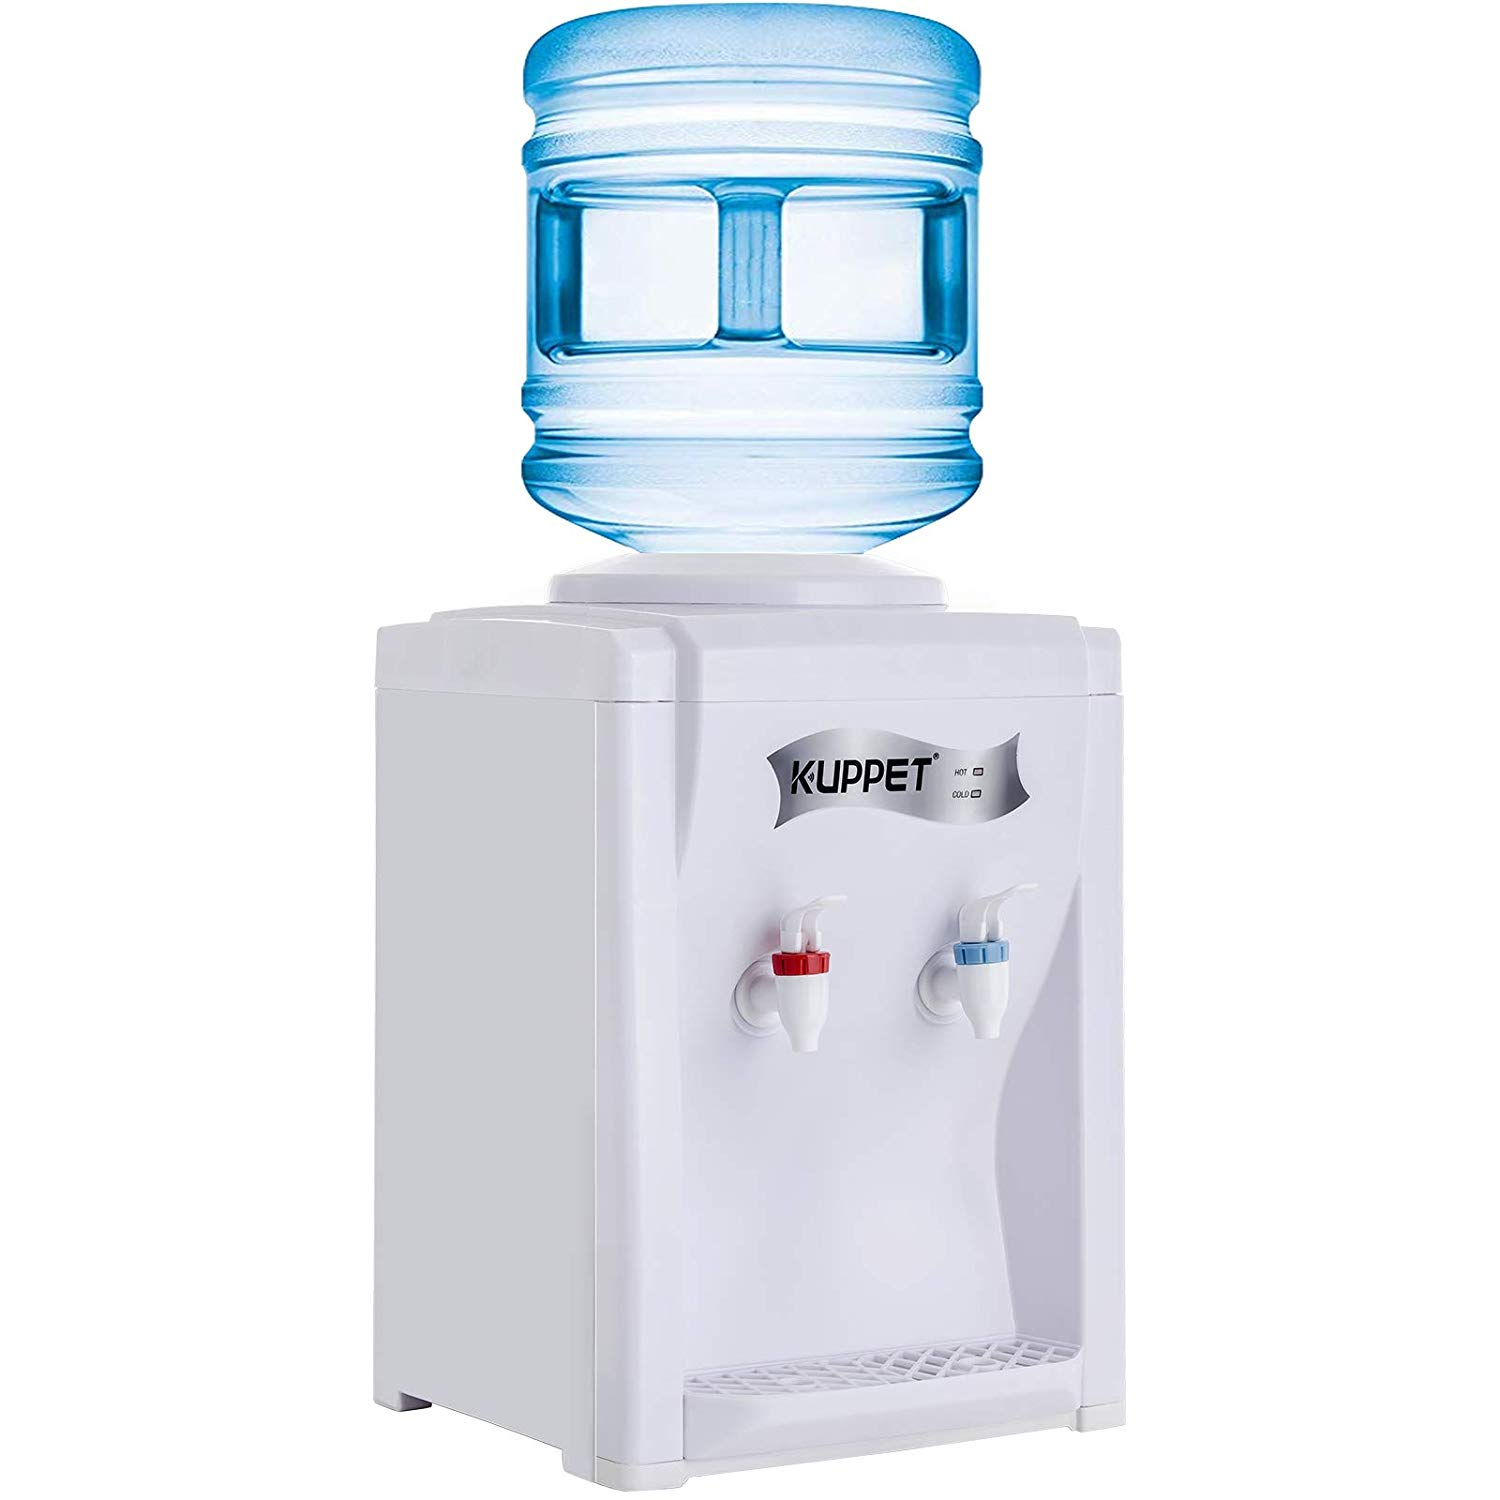 Kuppet 3-5 Gallon Countertop Water Cooler Dispenser Hot & Cold Water